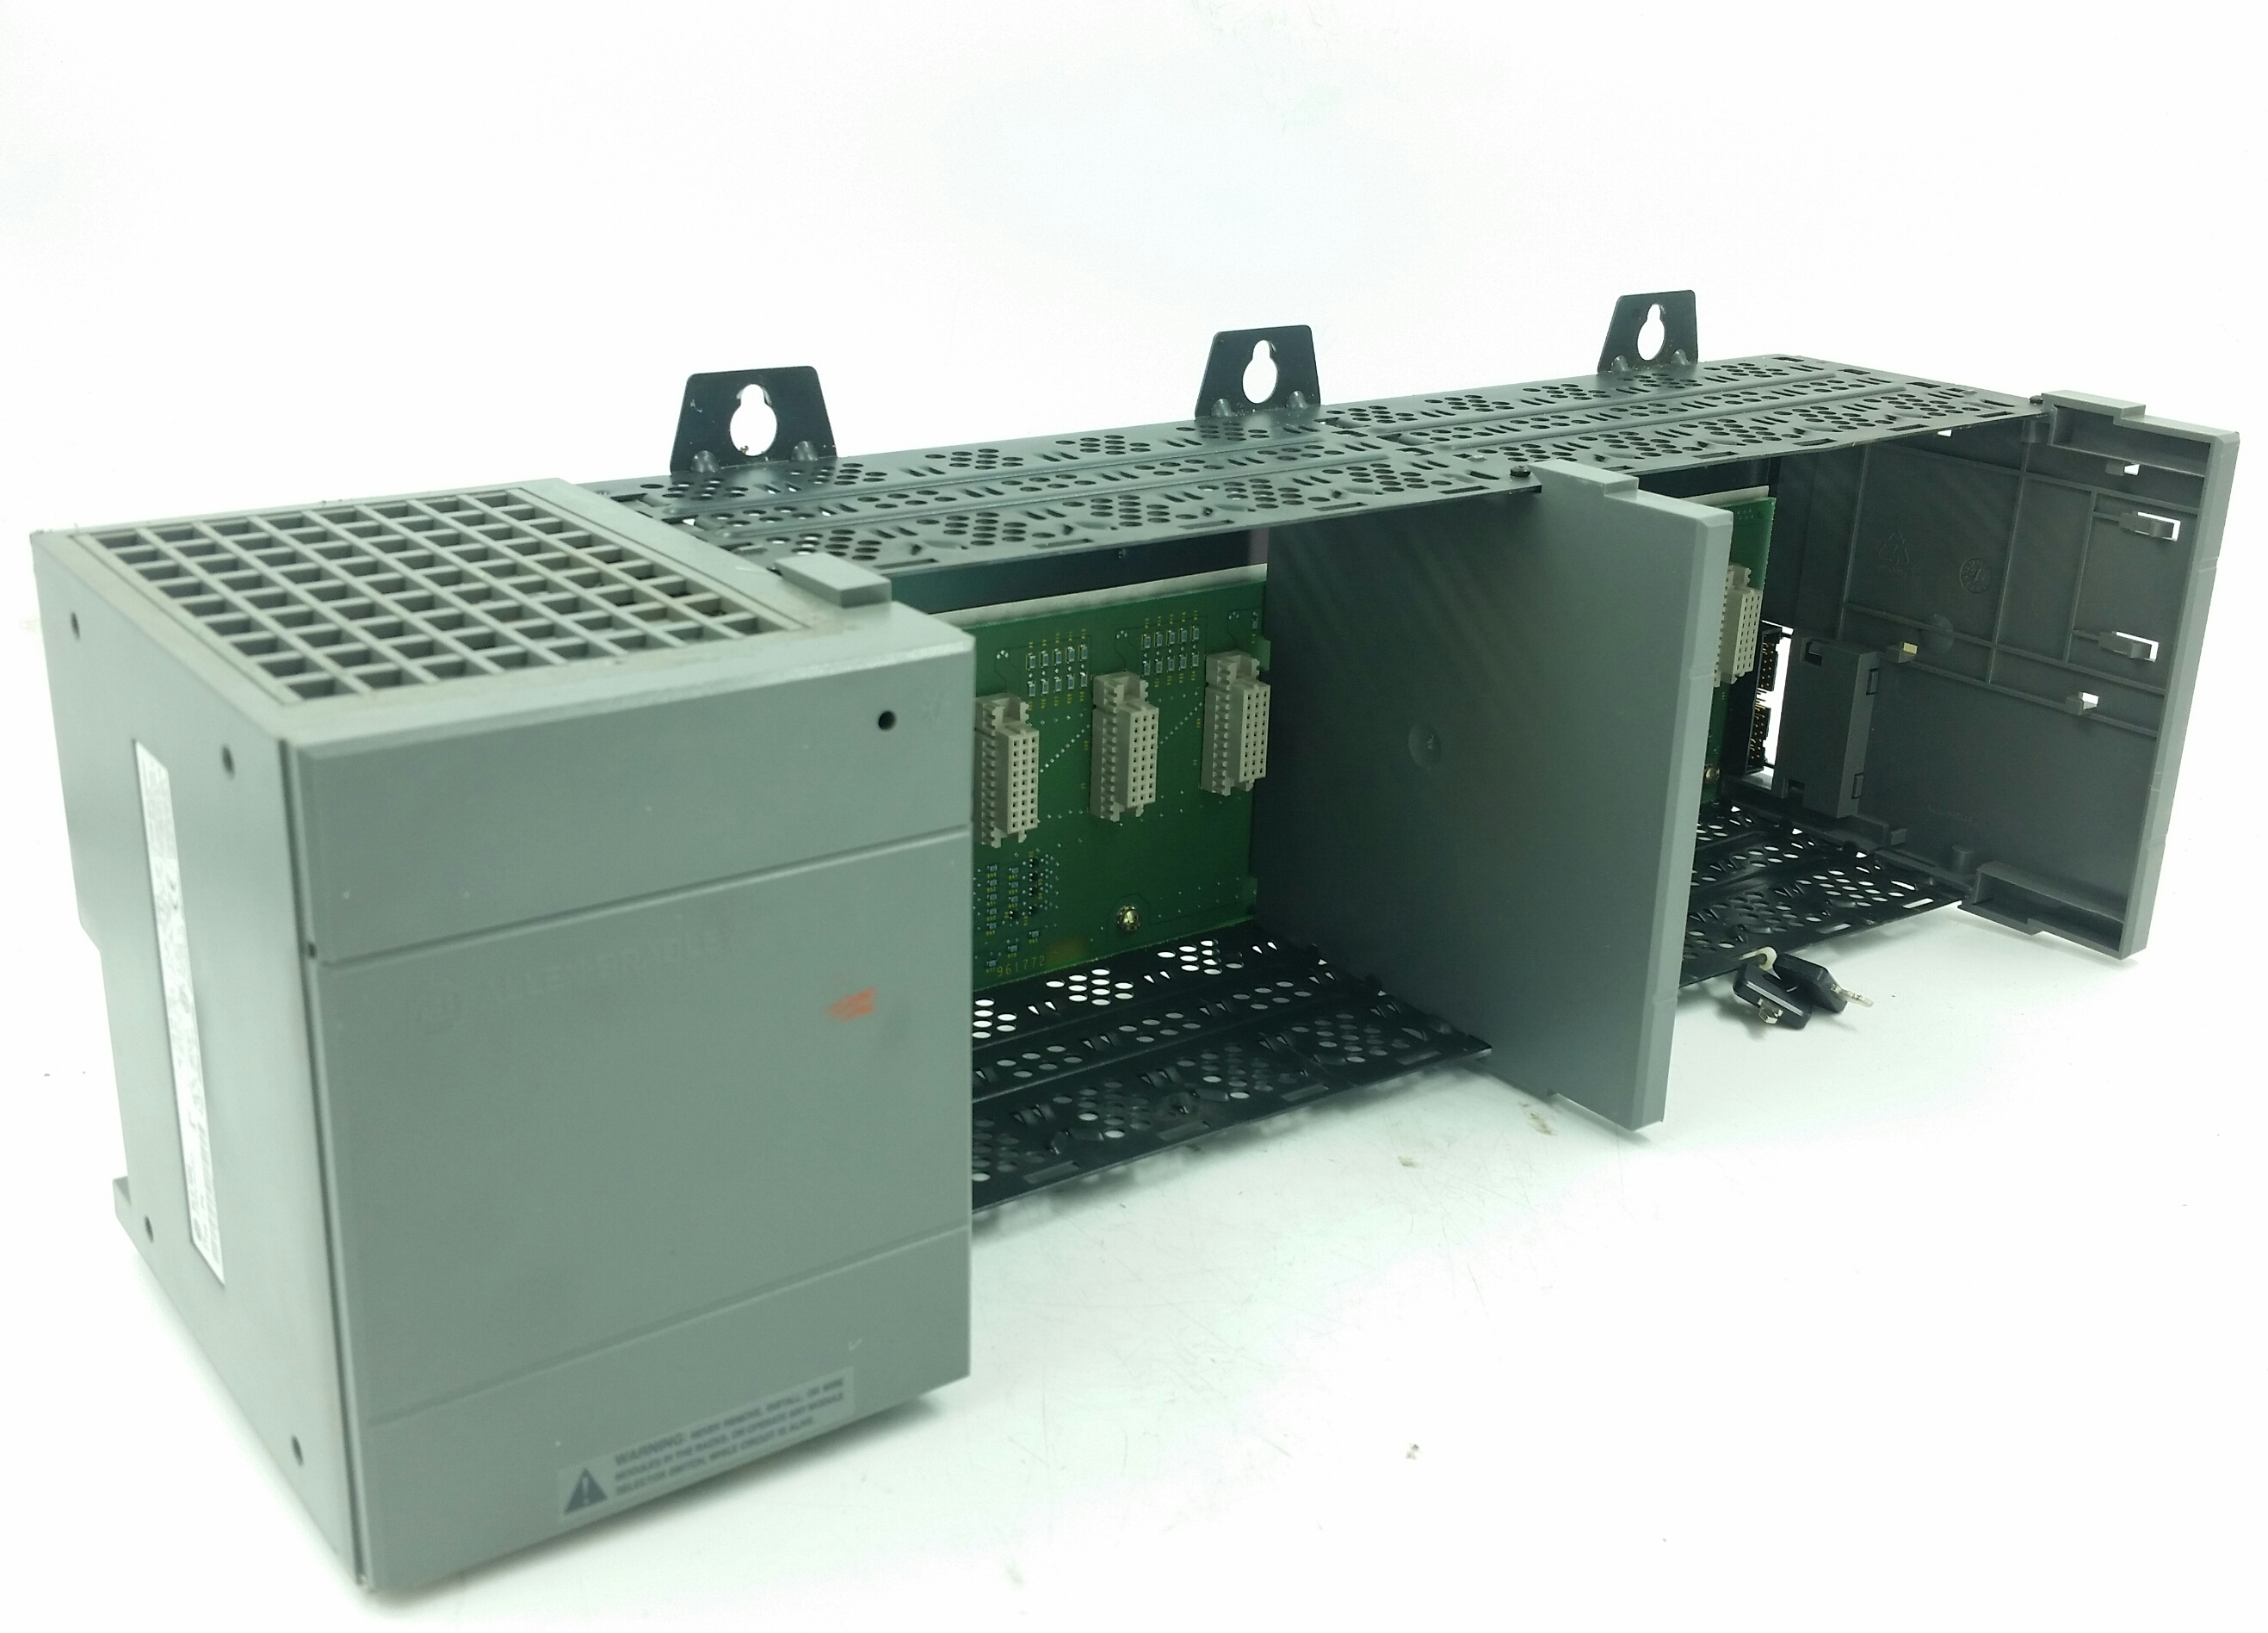 Allen-Bradley SLC 500 10 Slot Rack w/ 1746-P4 Power Supply 1746-